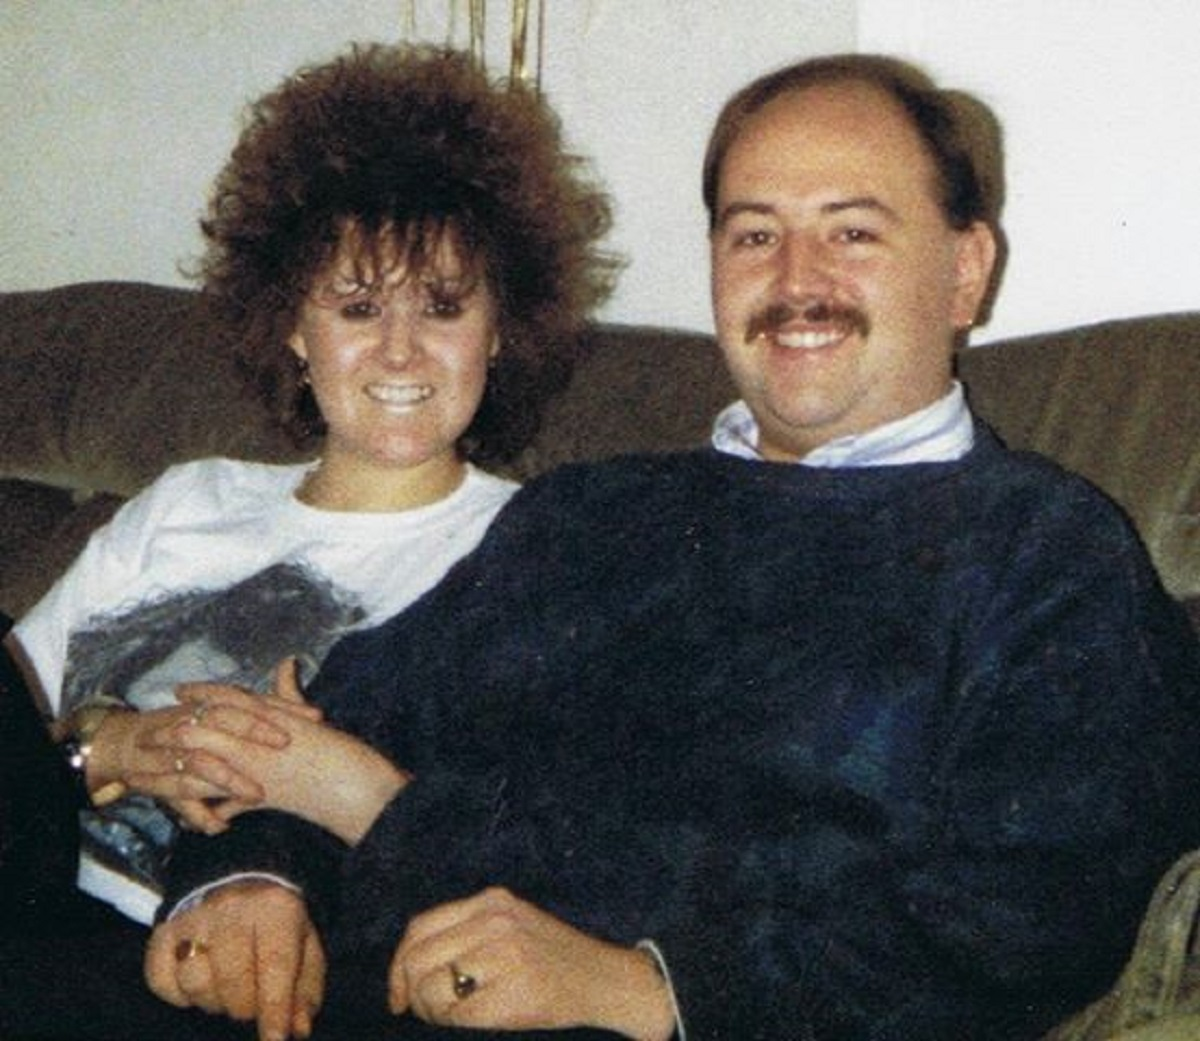 INQUESTS BEGIN: Louise Brookes, the sister of Andrew who lost his life in the Hillsborough tragedy, has travelled to Warrington for the new inquests. SP